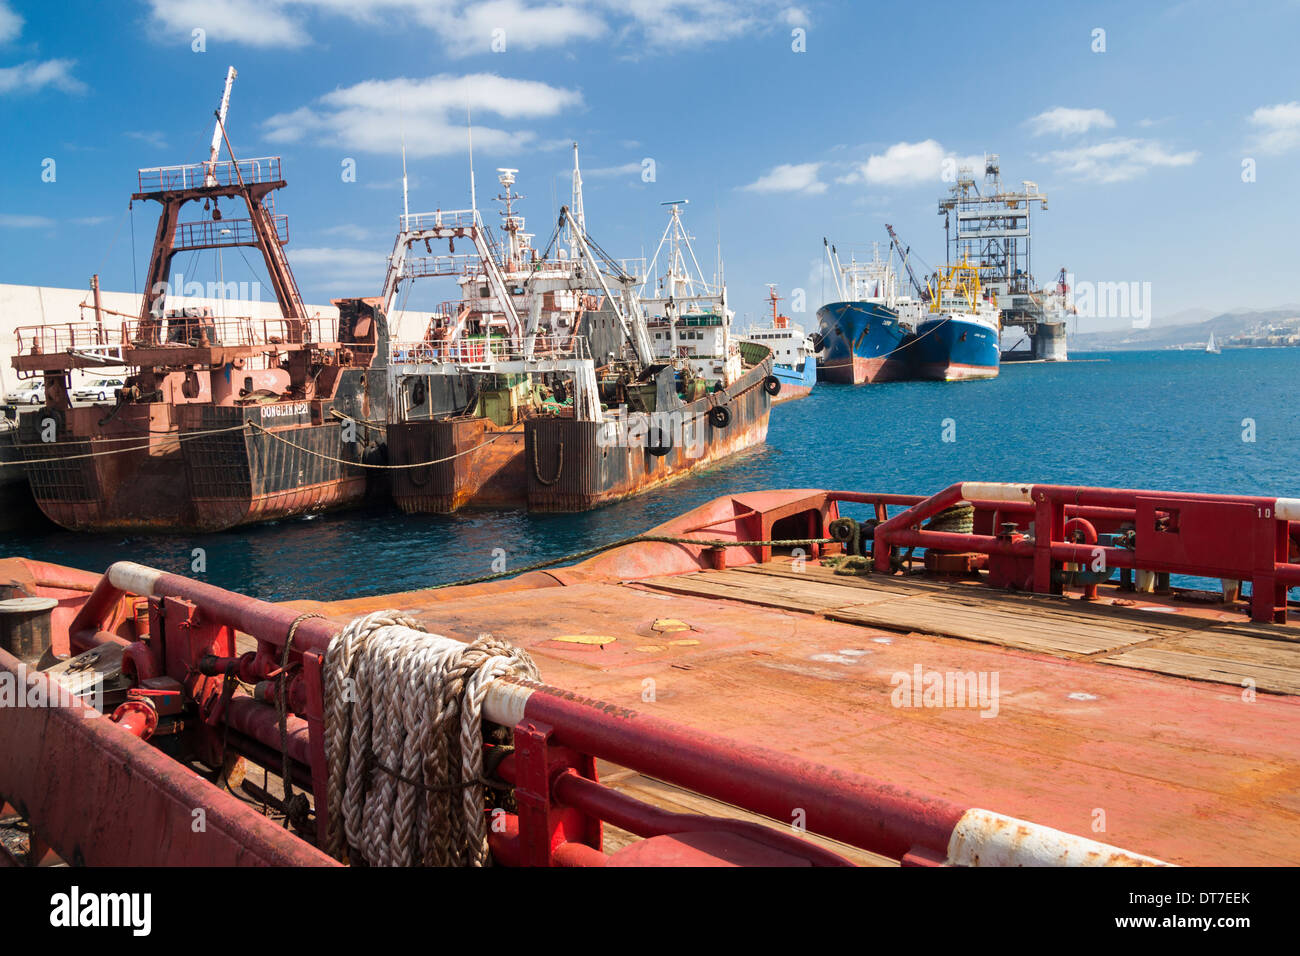 Fishing trawlers and oil rig in port in las palmas gran canaria stock photo royalty free image - Port of las palmas gran canaria ...